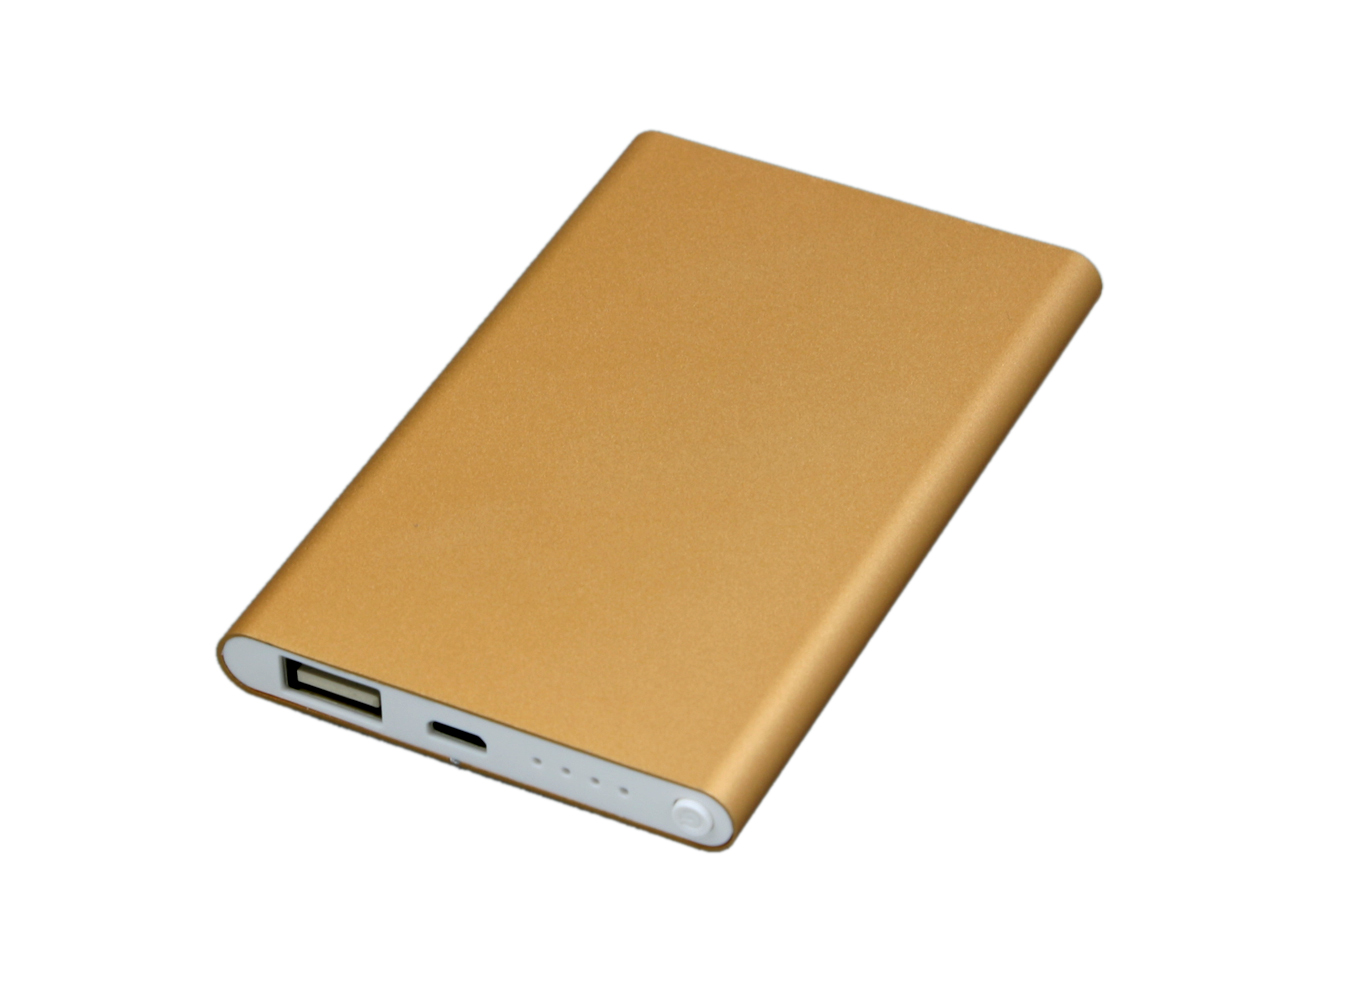 Power Bank 4000 mAh бронзовый PB001 оптом